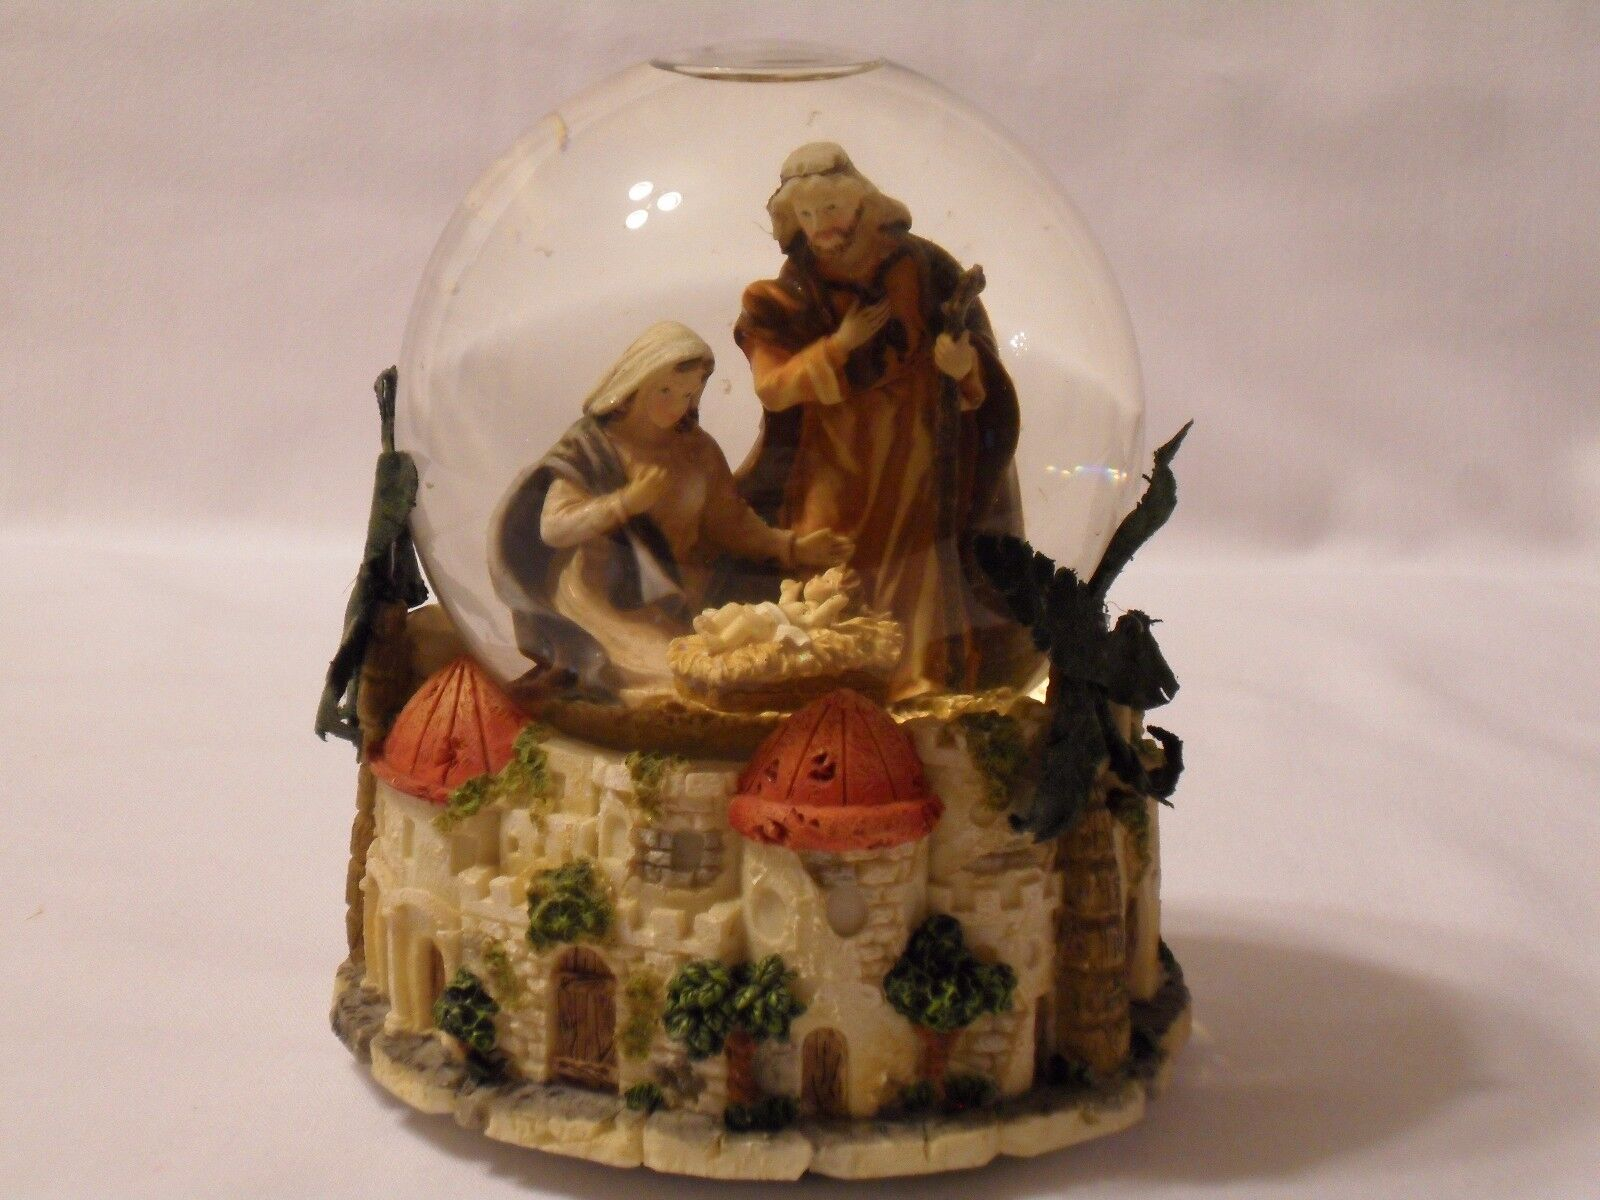 Nativity Bethlehem Snow Globe - $15.00